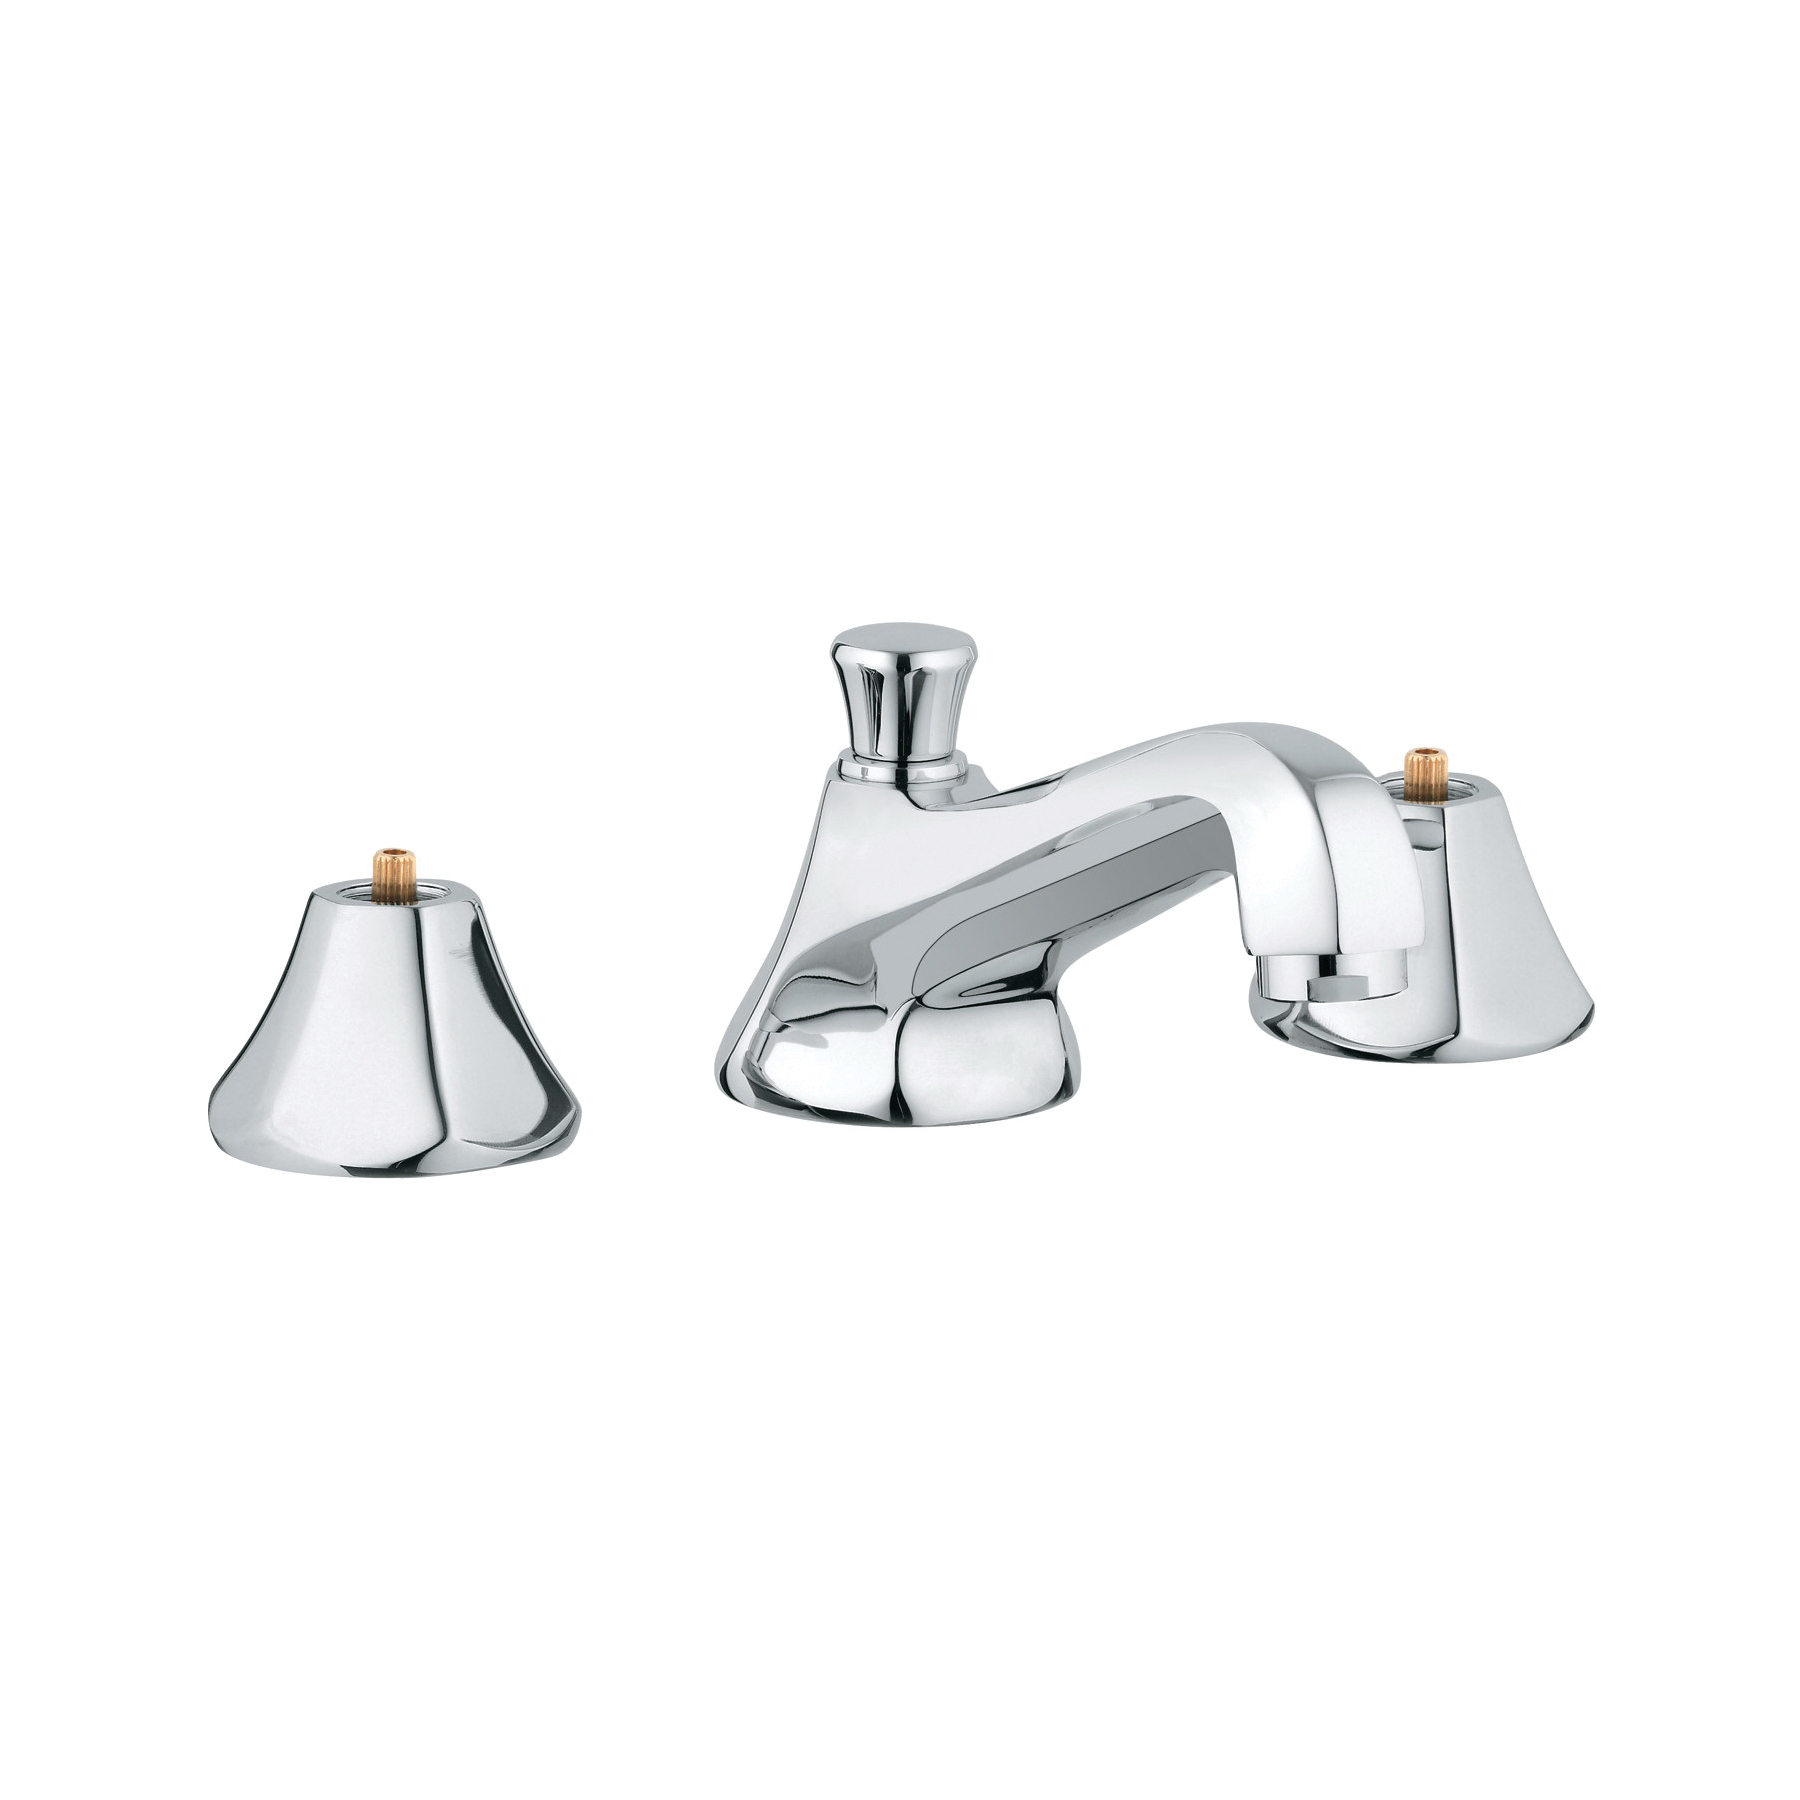 GROHE 2013300A Somerset Widespread Bathroom Basin Mixer Without Handle, 1.2 gpm, 1-11/16 in H Spout, 5-1/2 to 17-3/4 in Center, StarLight® Chrome, 2 Handles, Pop-Up Drain, Import